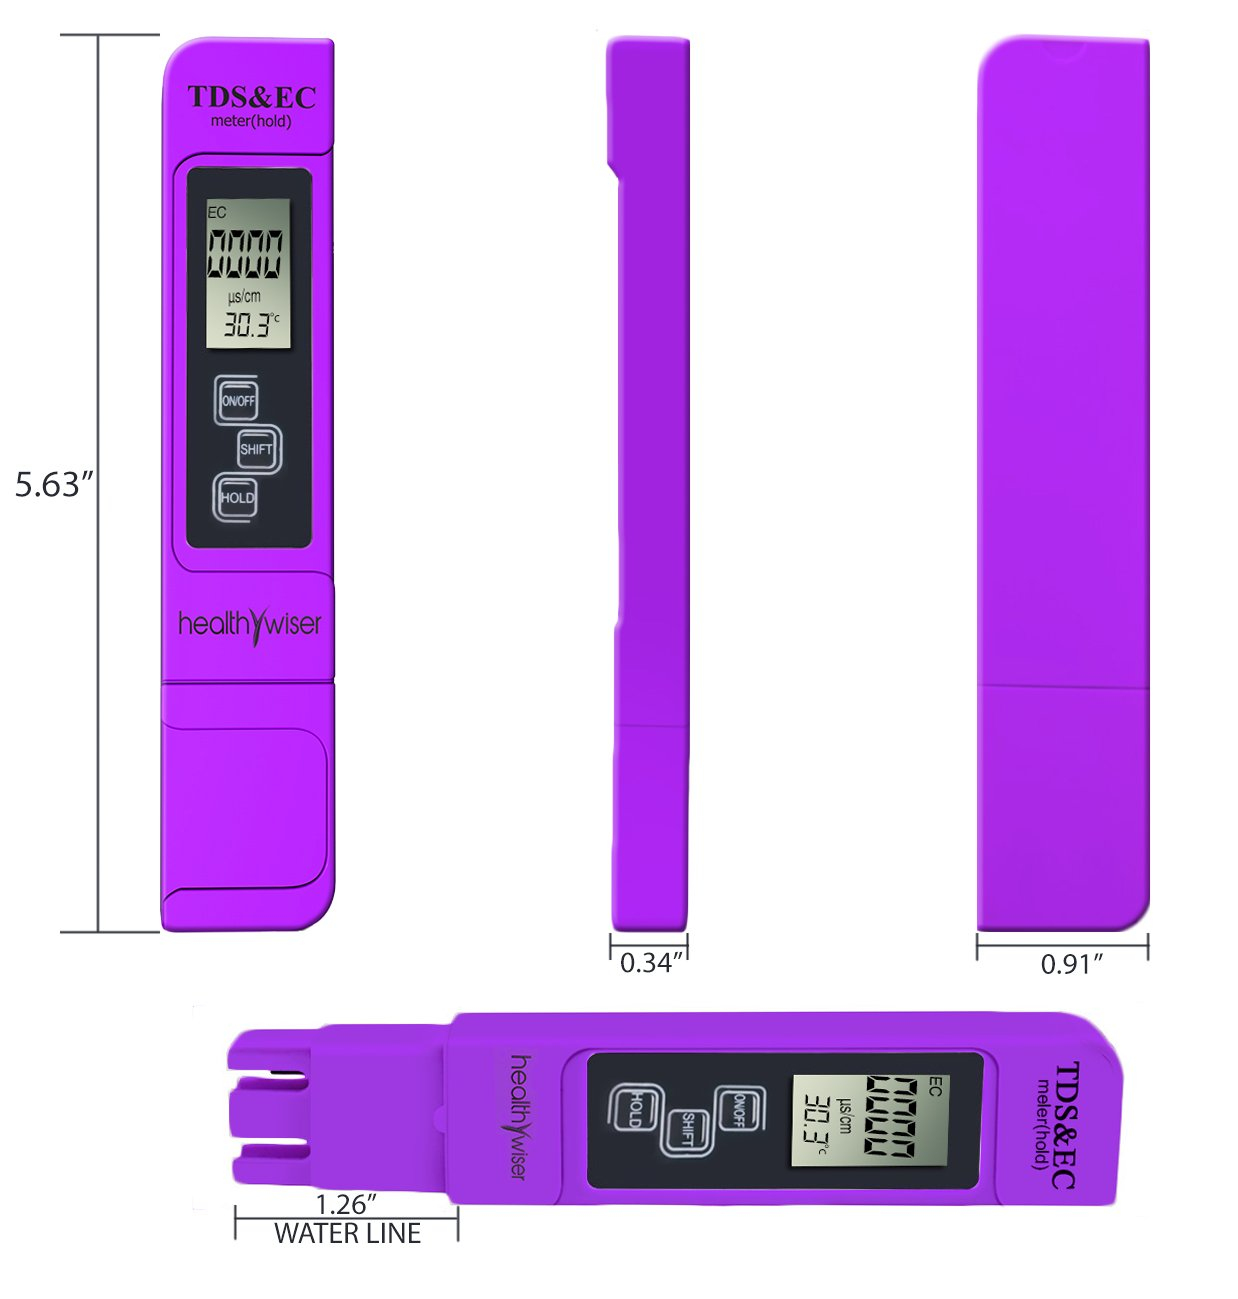 TDS Meter, Professional-Grade Water Test Kit Tests Water Quality in Drinking Water, General Hydroponics, Aquariums, Ponds, Pool, Spa, Water Purifier, 100% Accurate 3 in 1 TDS, EC and Temperature Meter